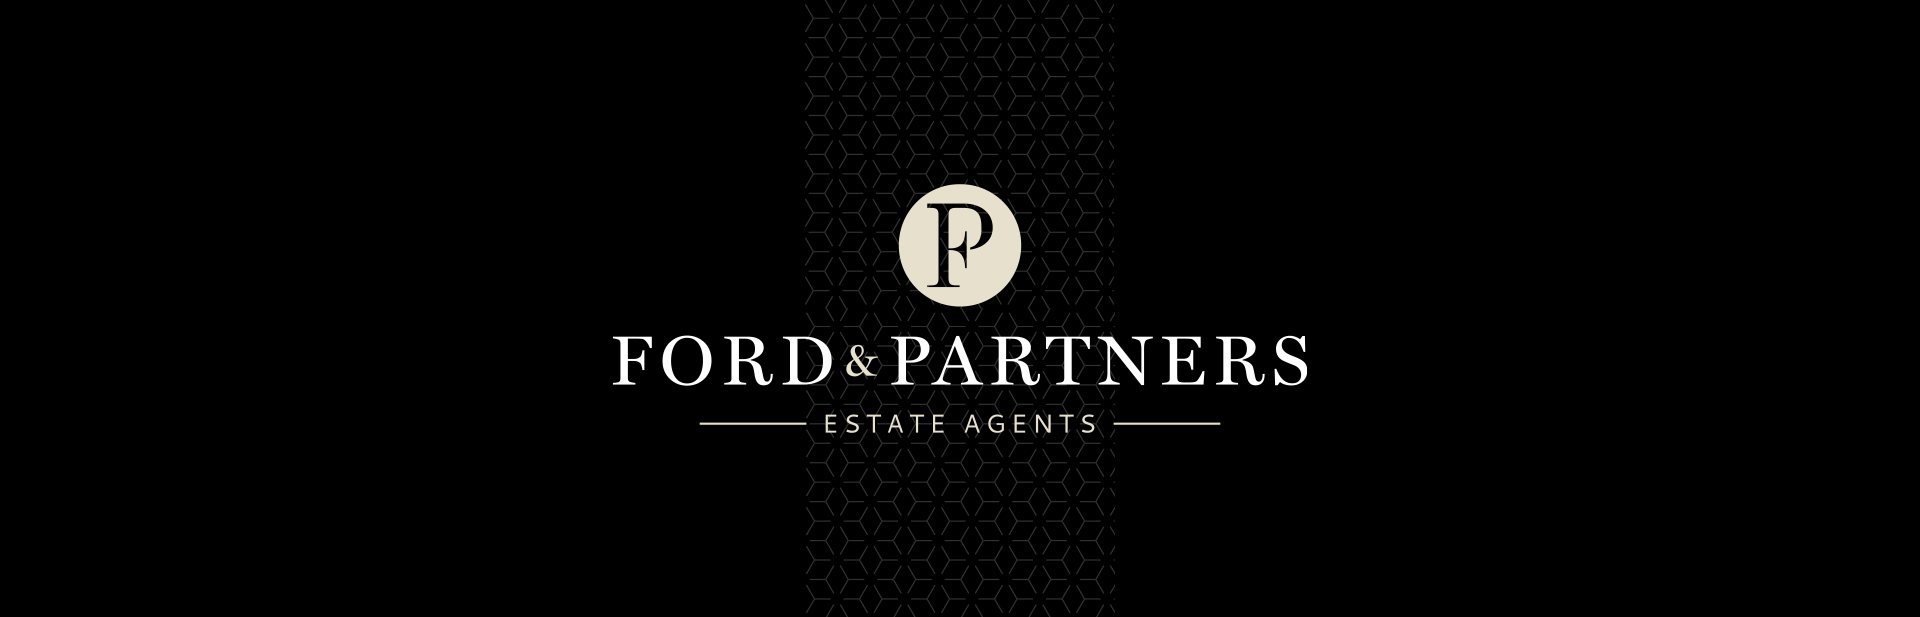 Ford & Partners